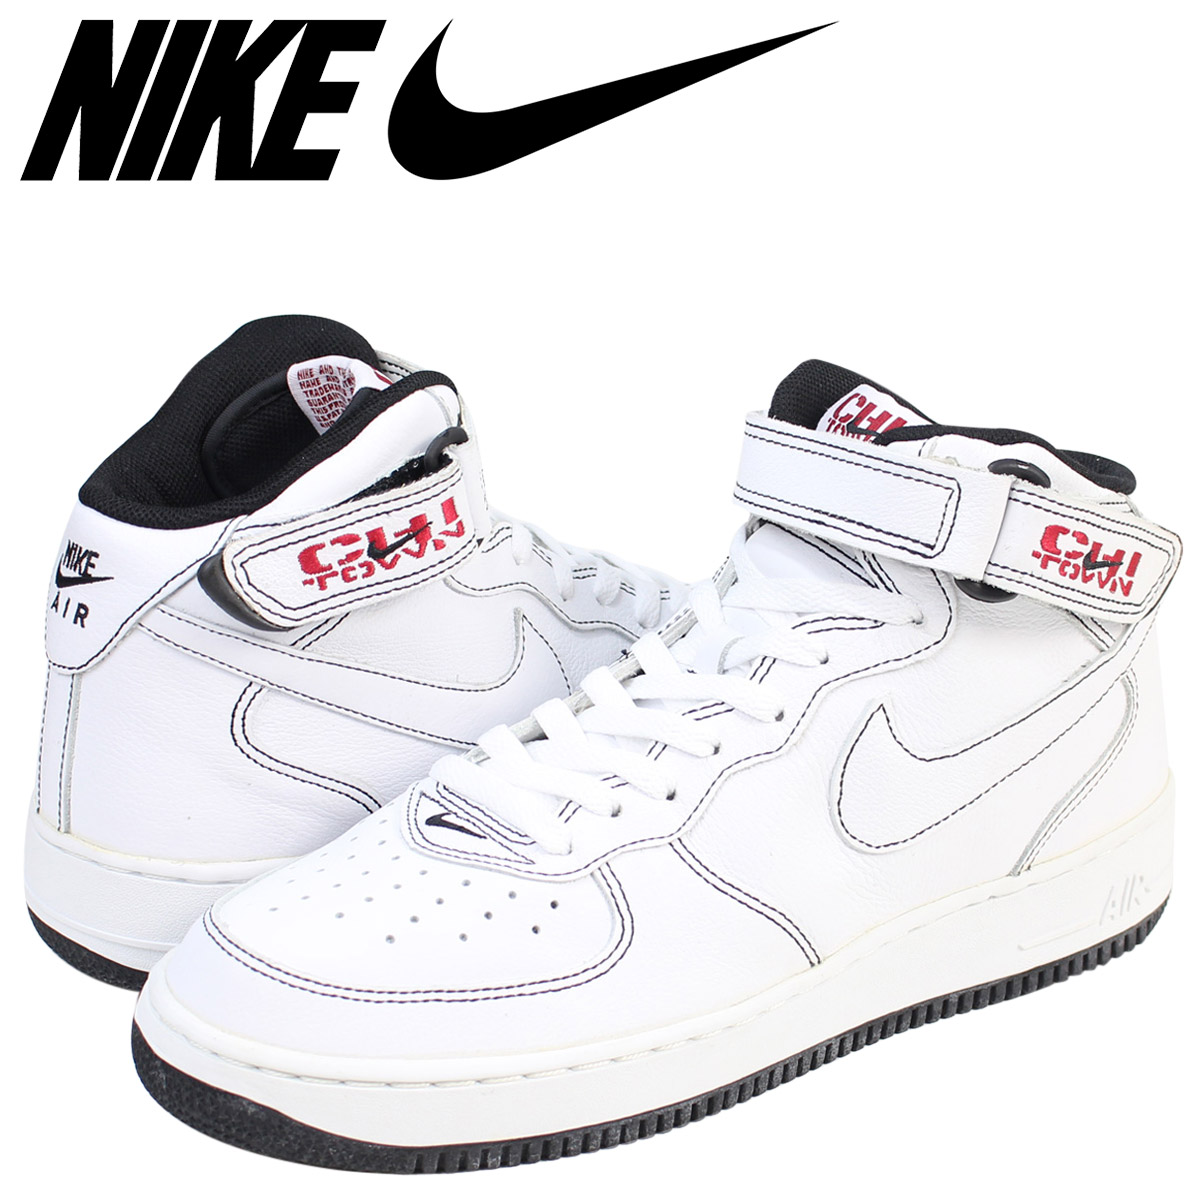 [SOLD OUT] NIKE Nike air force 1 mid sneakers AIR FORCE 1 MID CHI TOWN 02 men's 304,096 112 shoes white